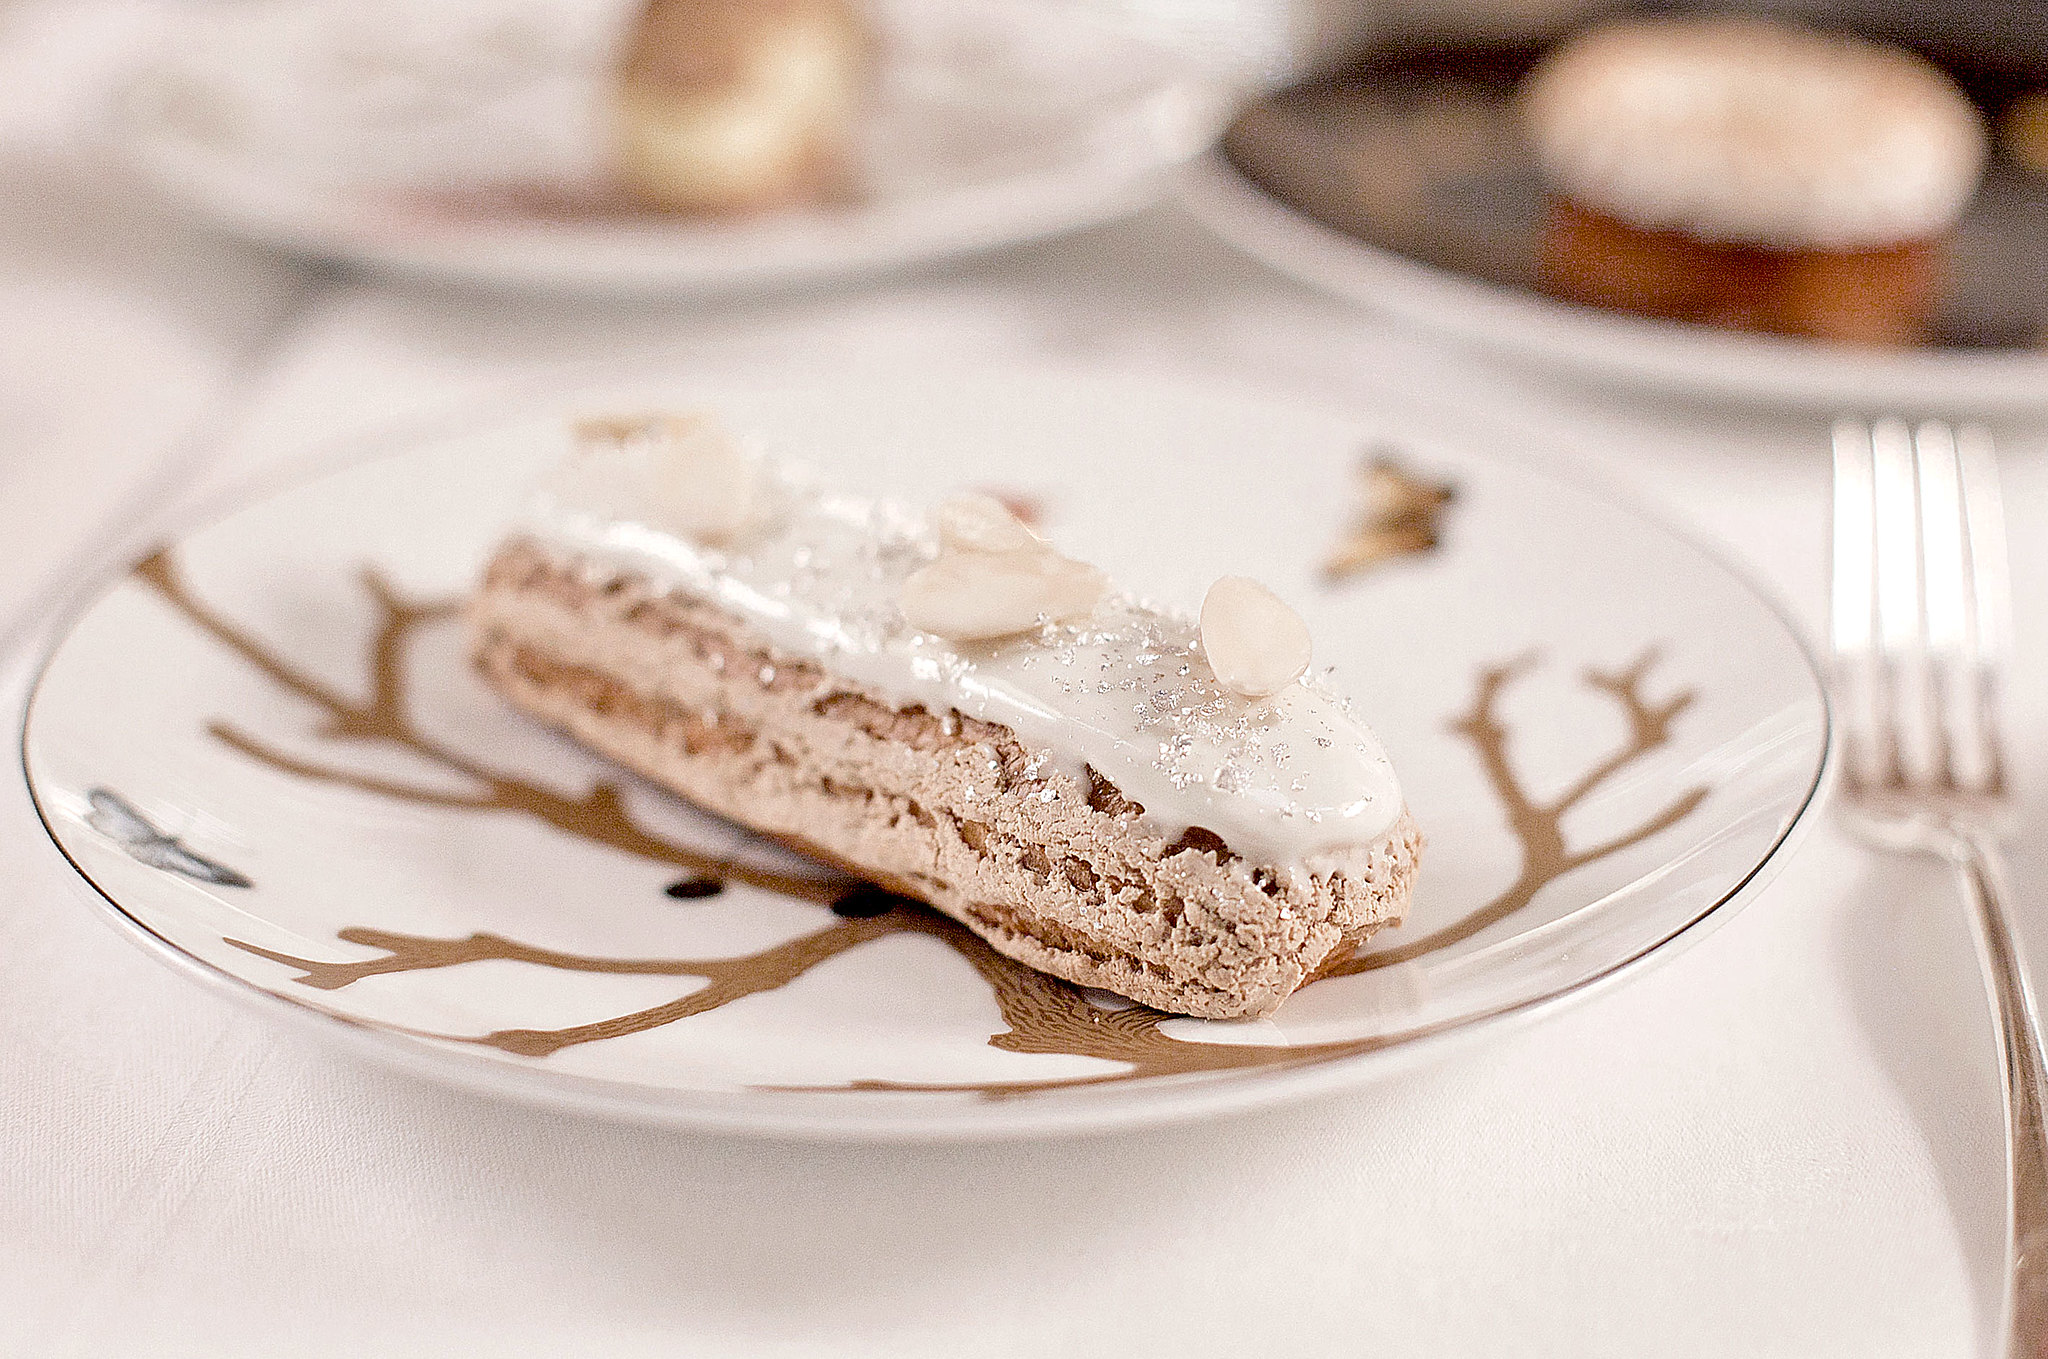 Pastry by Cédric Grolet, Hotel Le Meurice